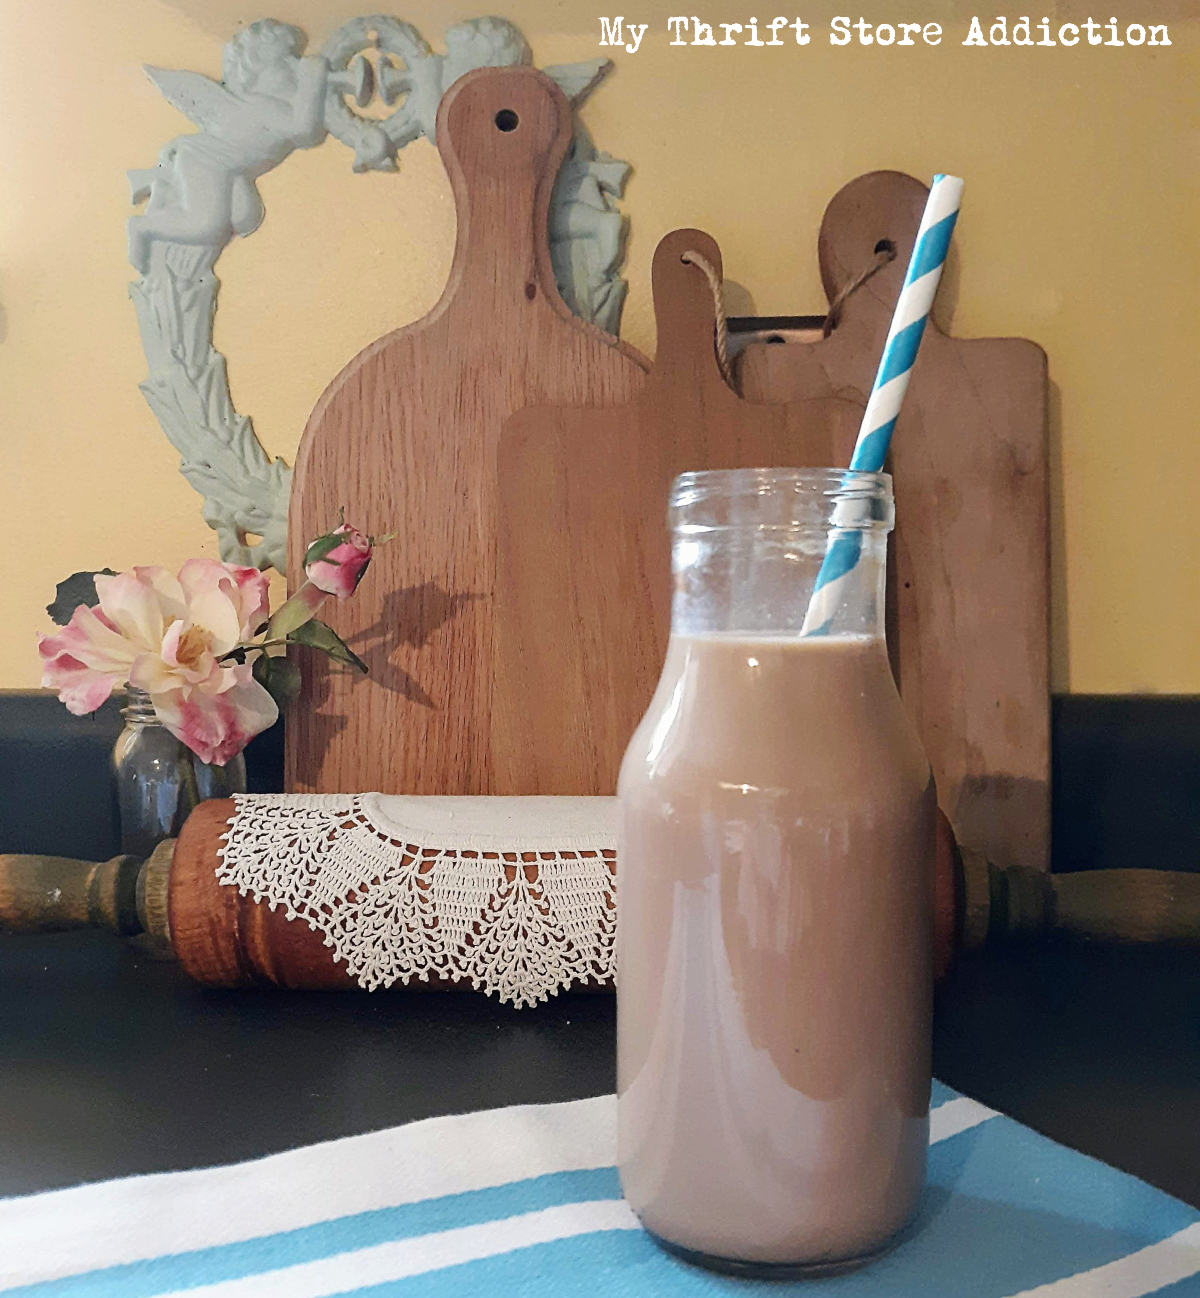 Low carb iced mocha recipe